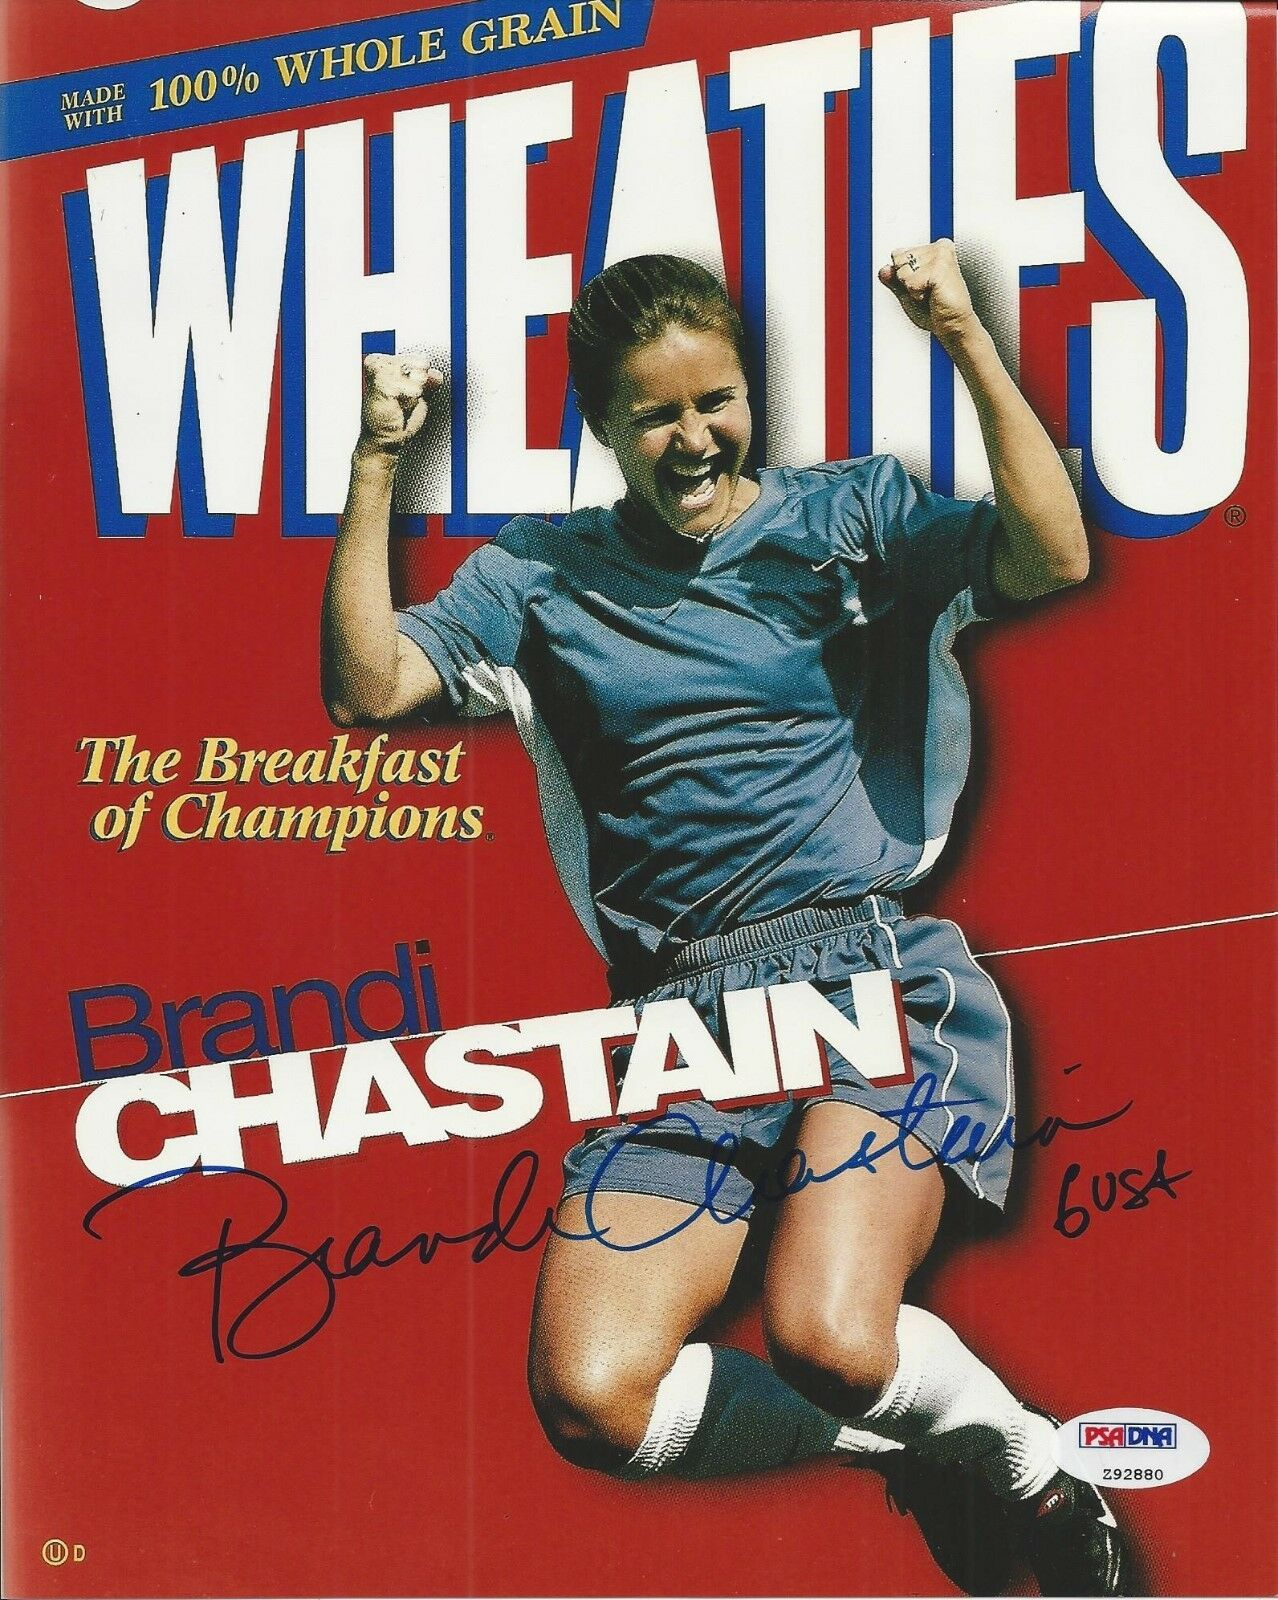 Brandi Chastain Signed Team USA 8x10 Photograph - PSA/DNA #Z92880